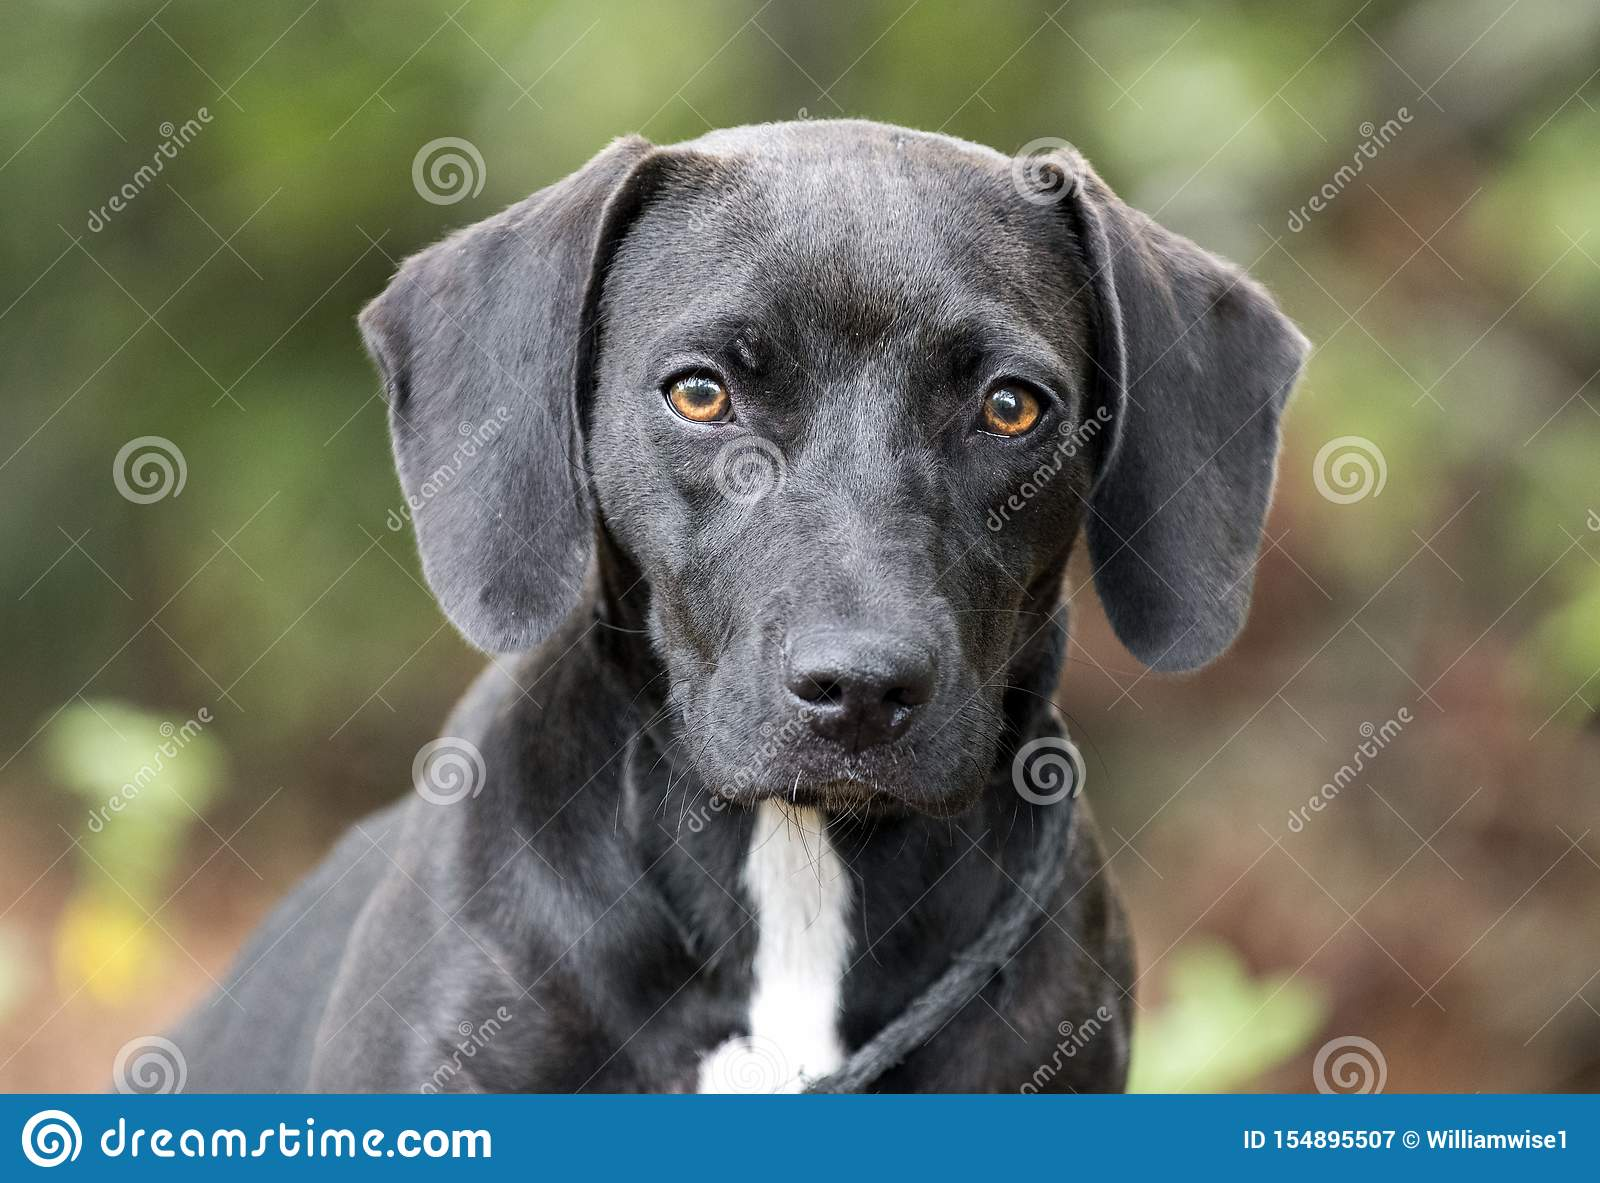 Beagle Dachshund Puppy Dog With Floppy Ears Stock Image Image Of Humane Floppy 154895507